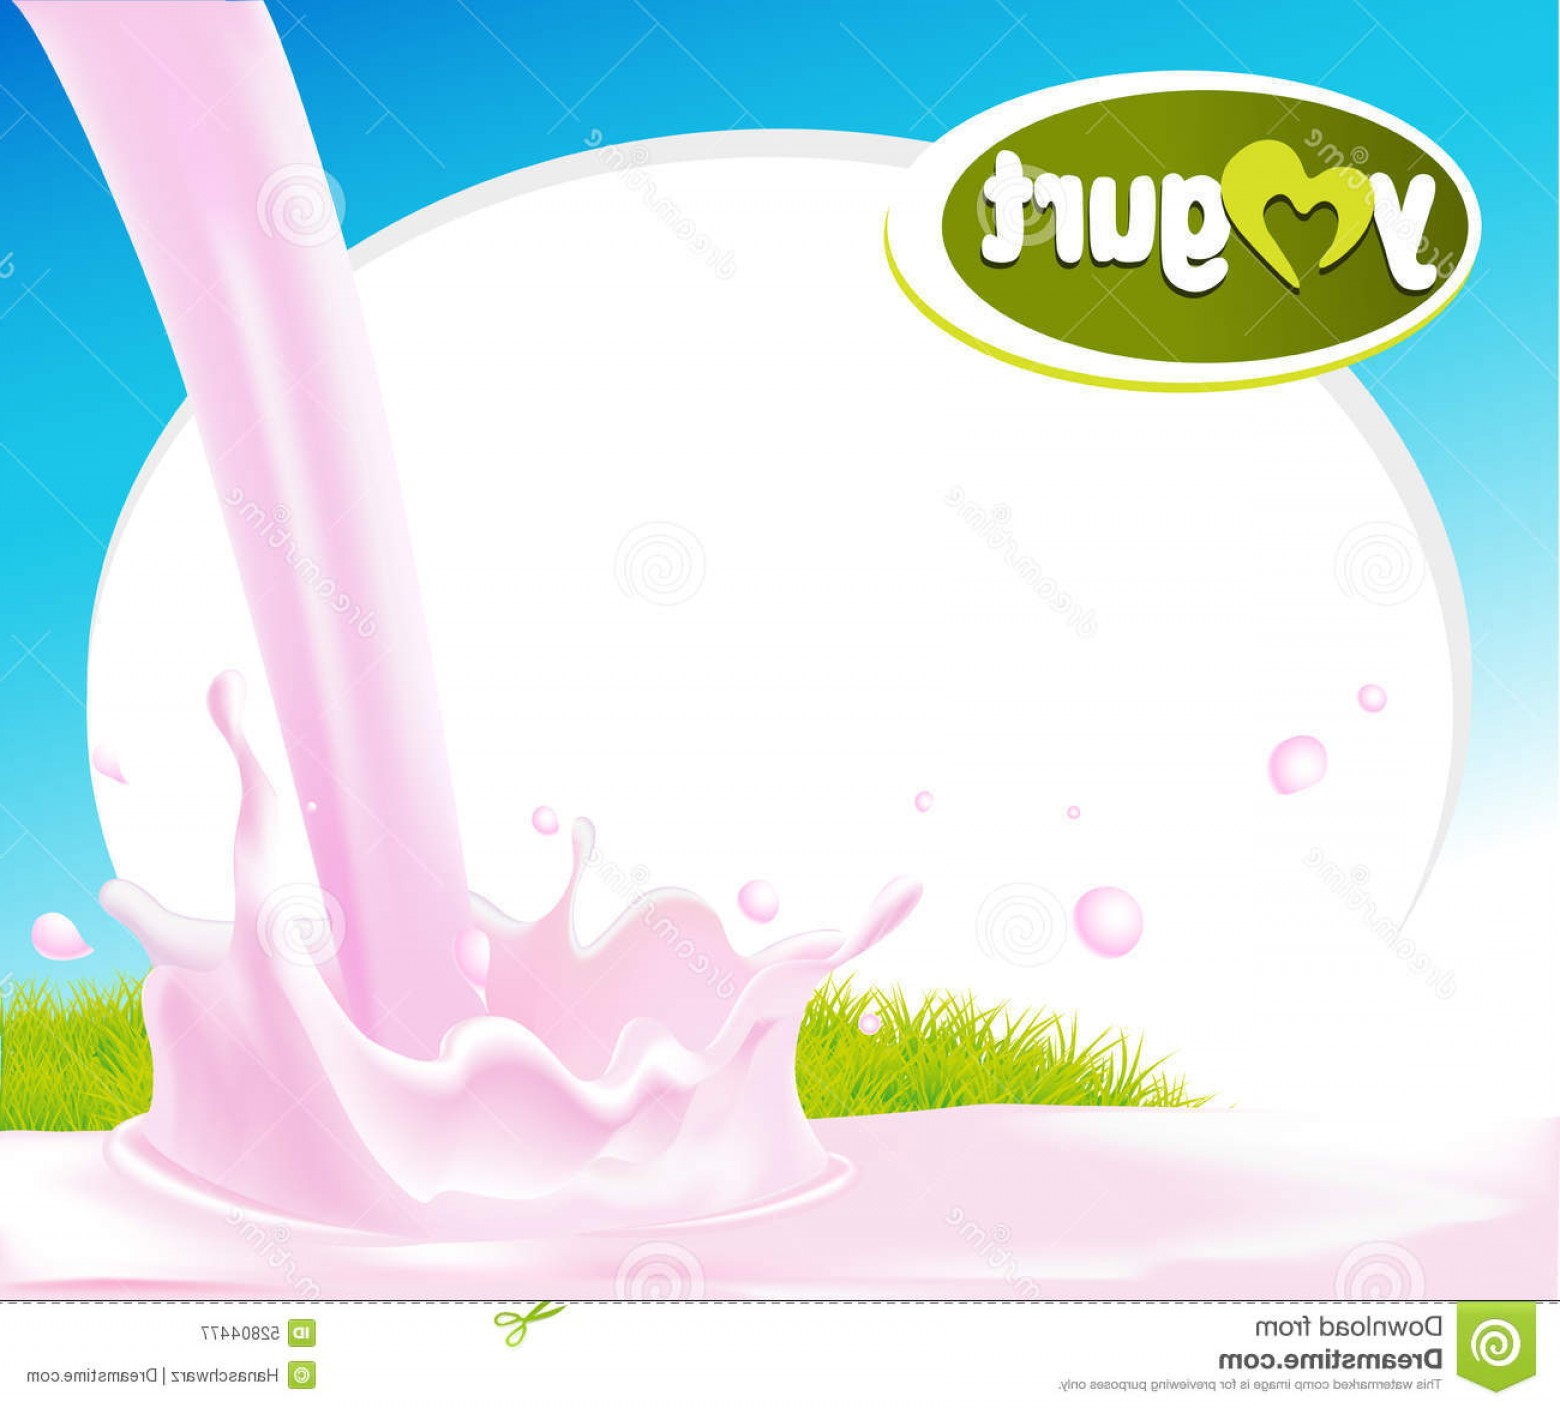 Yogurt Vector: Stock Illustration Vector Design Frame Pink Yogurt Splash Green Grass Image